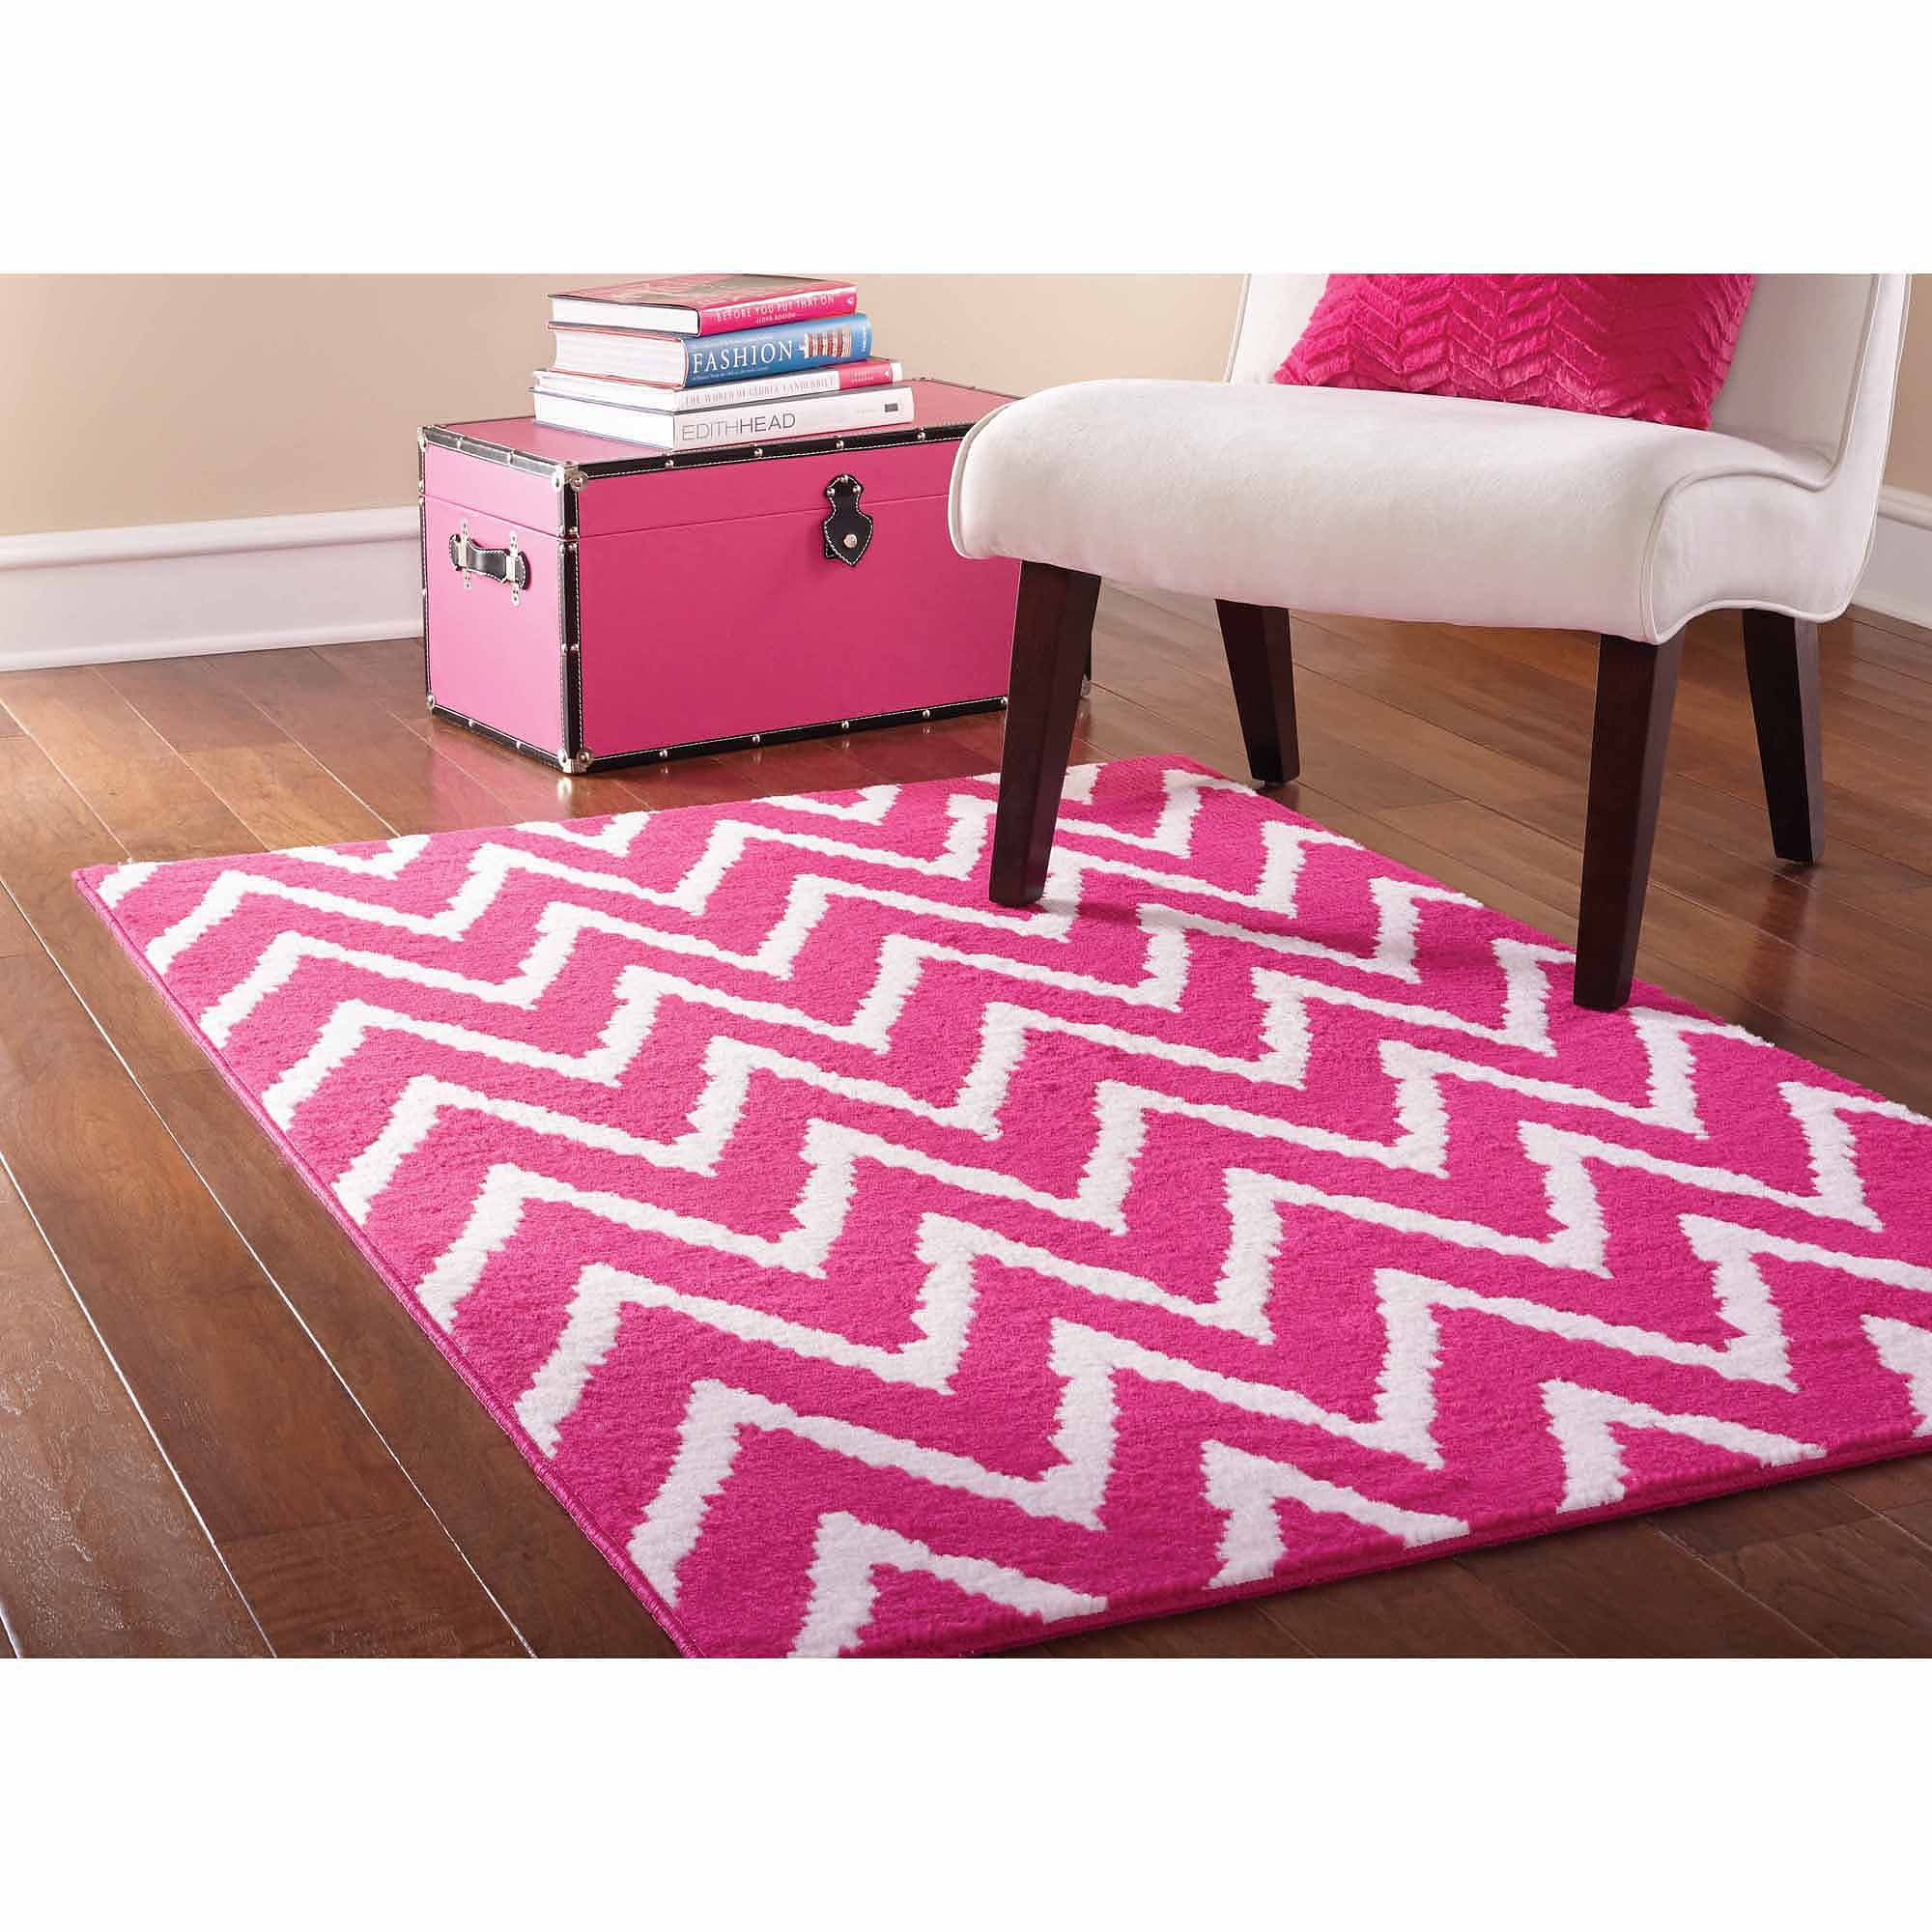 Mainstays Distressed Zig Zag Area Rug, Pink/White